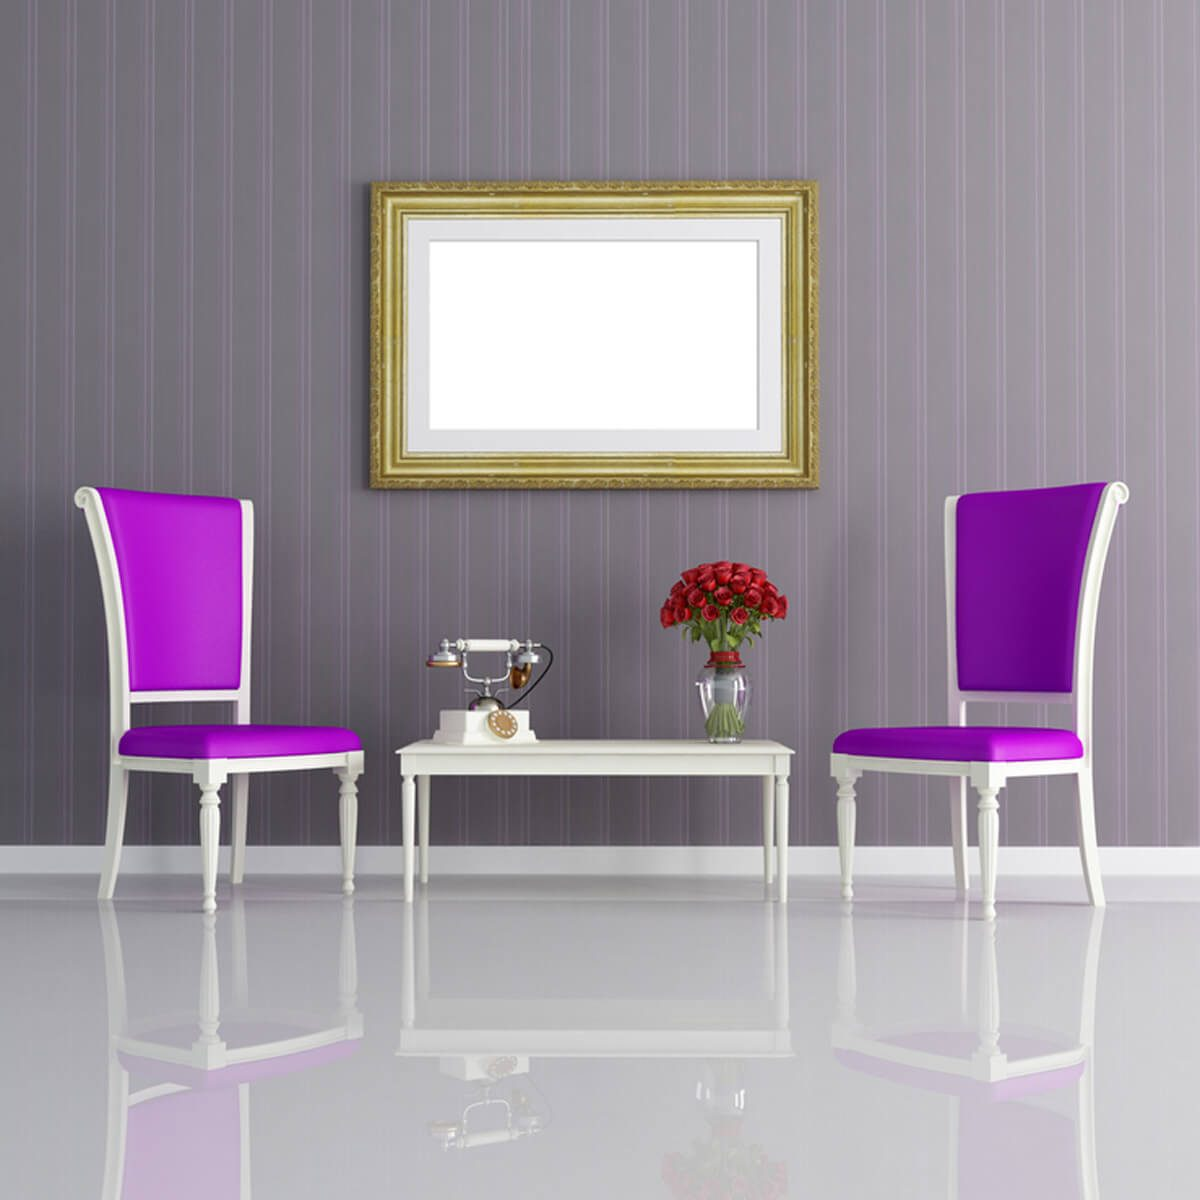 shutterstock_60149110 purple chairs